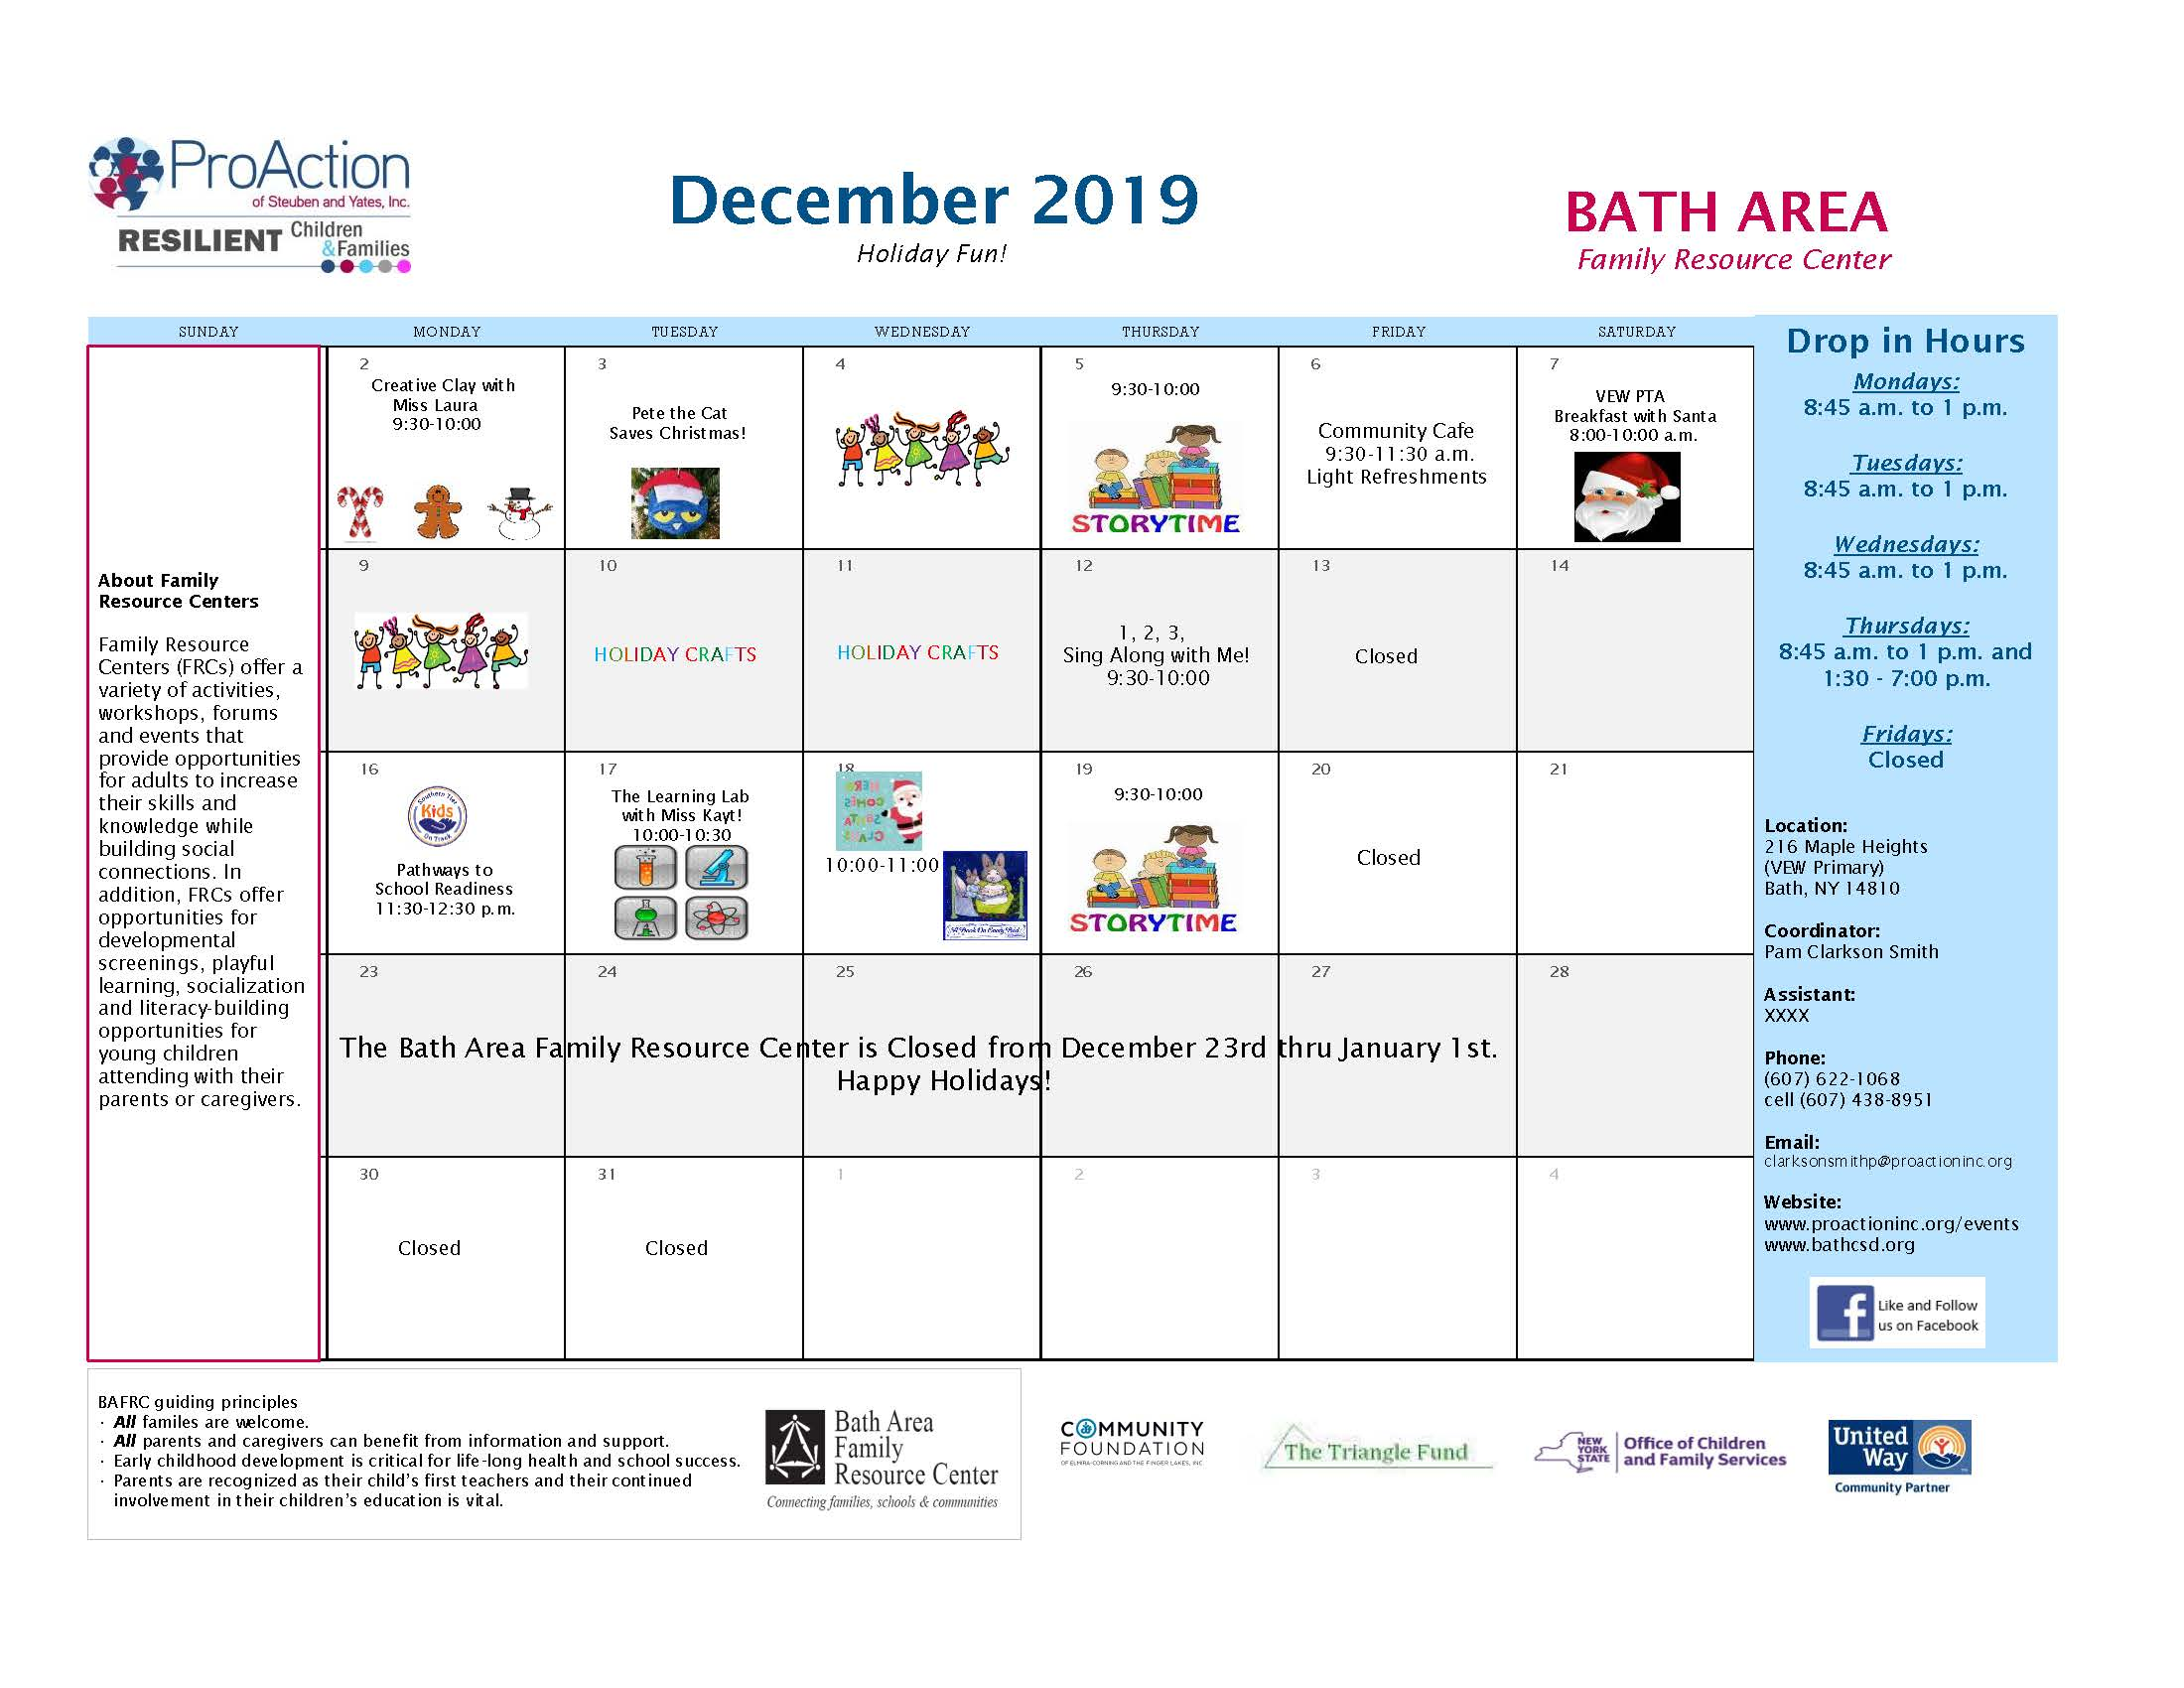 BAFRC Calendar December2019 - Bath Area Family Resource Center November Events